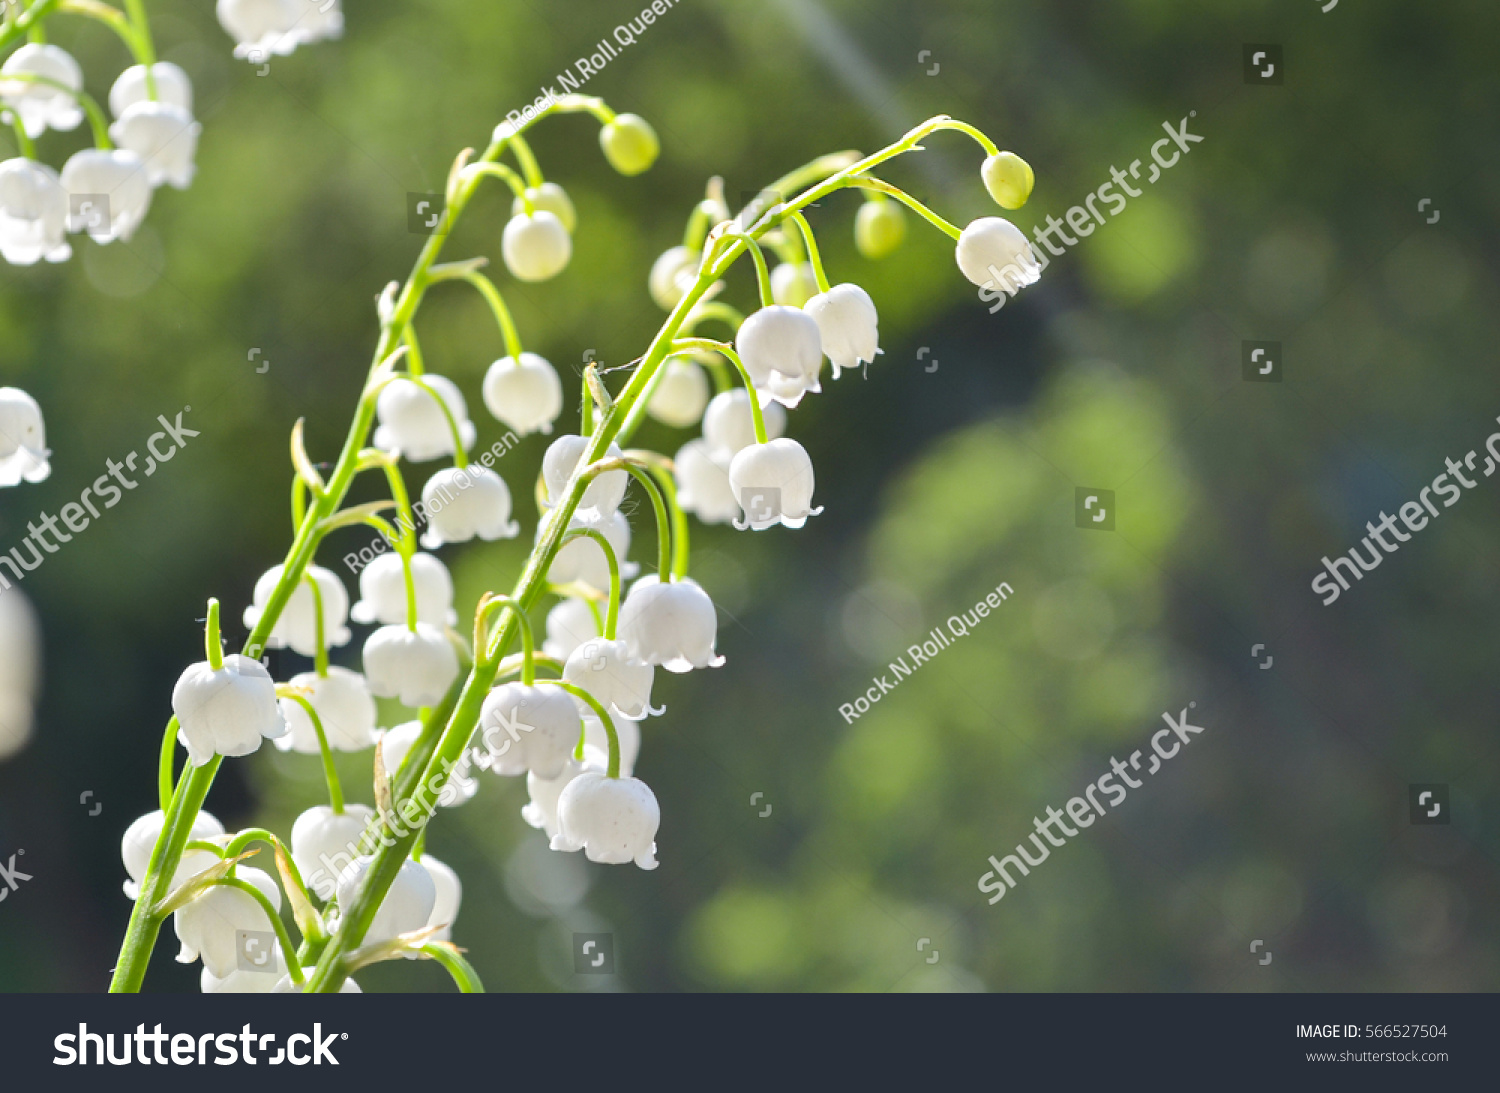 Closeup Lily Of The Valley In Selective Focus On Natural Background